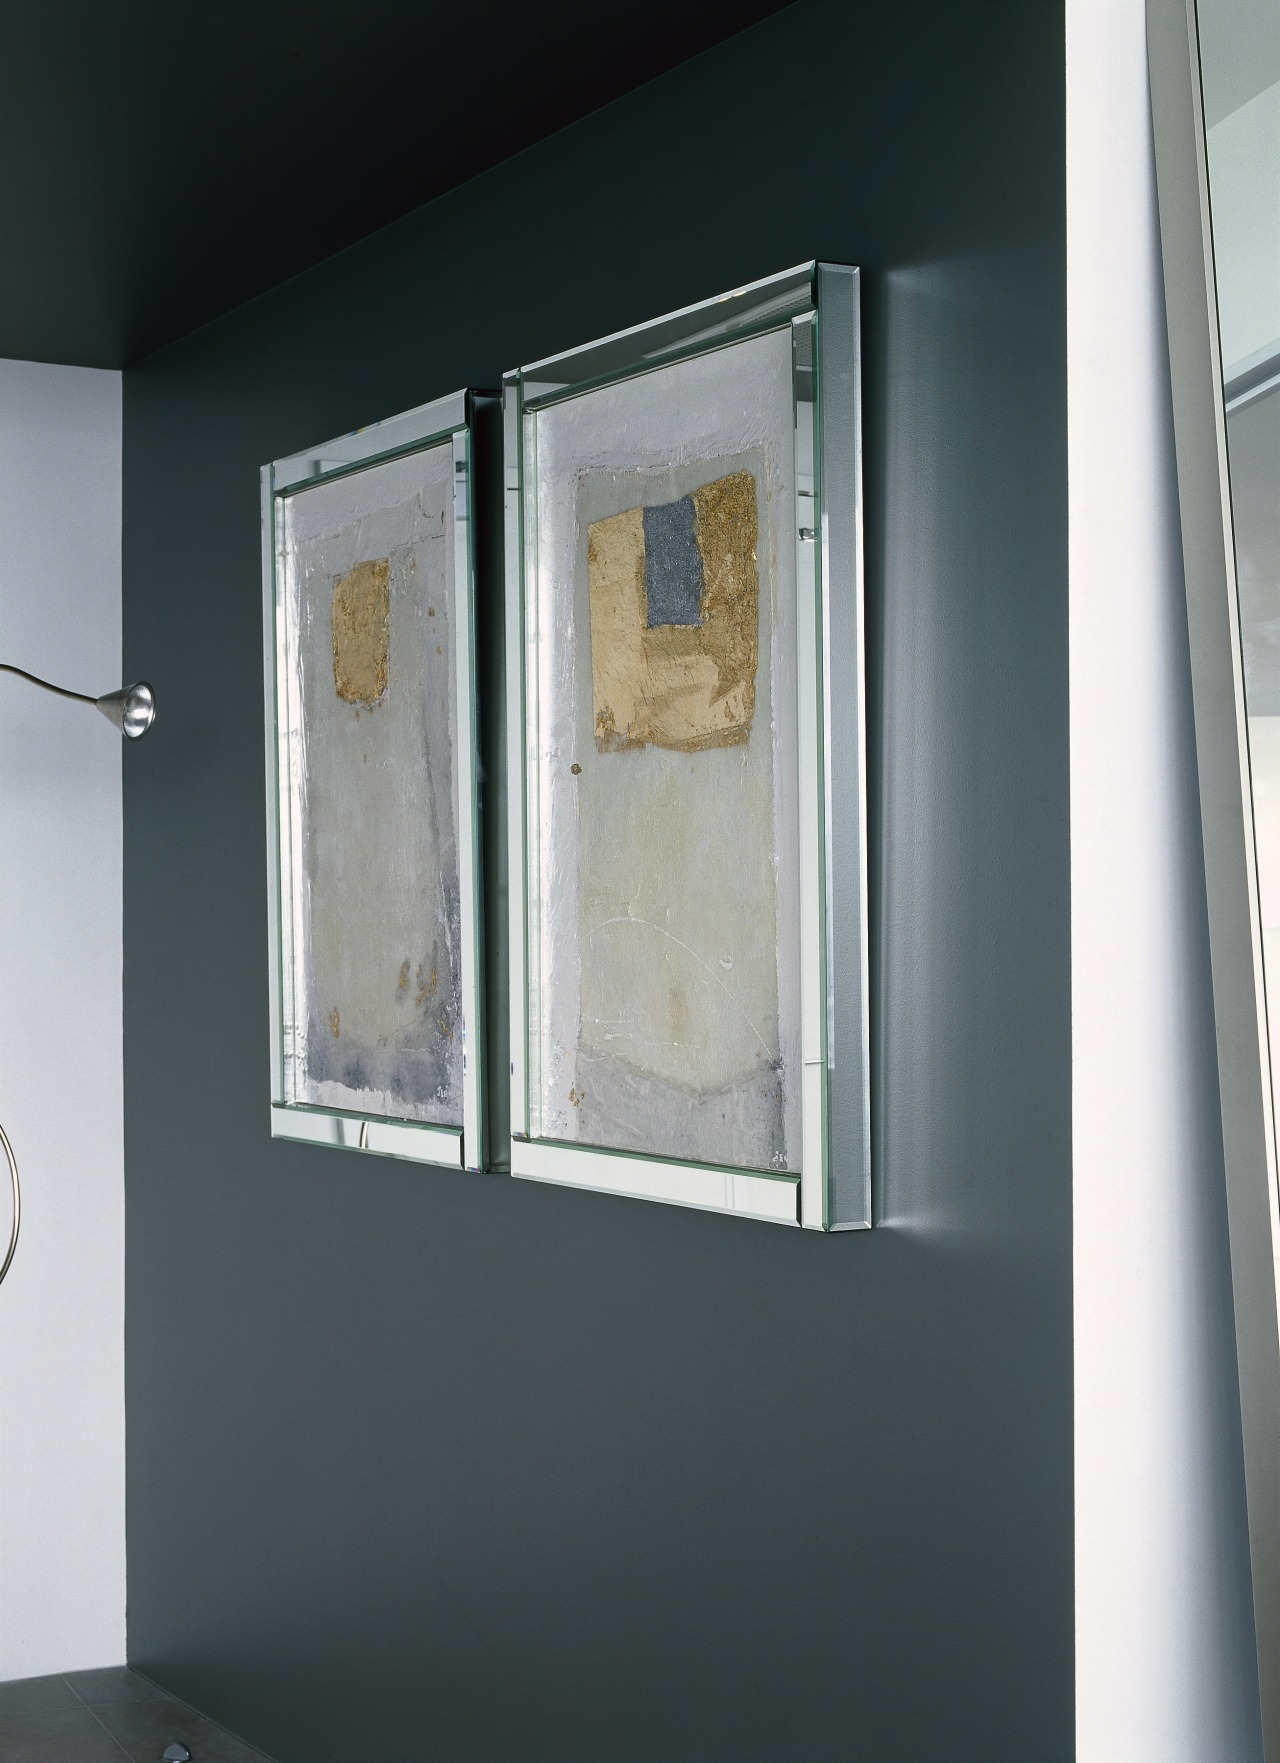 View of two side by side paintings against door, glass, window, gray, black